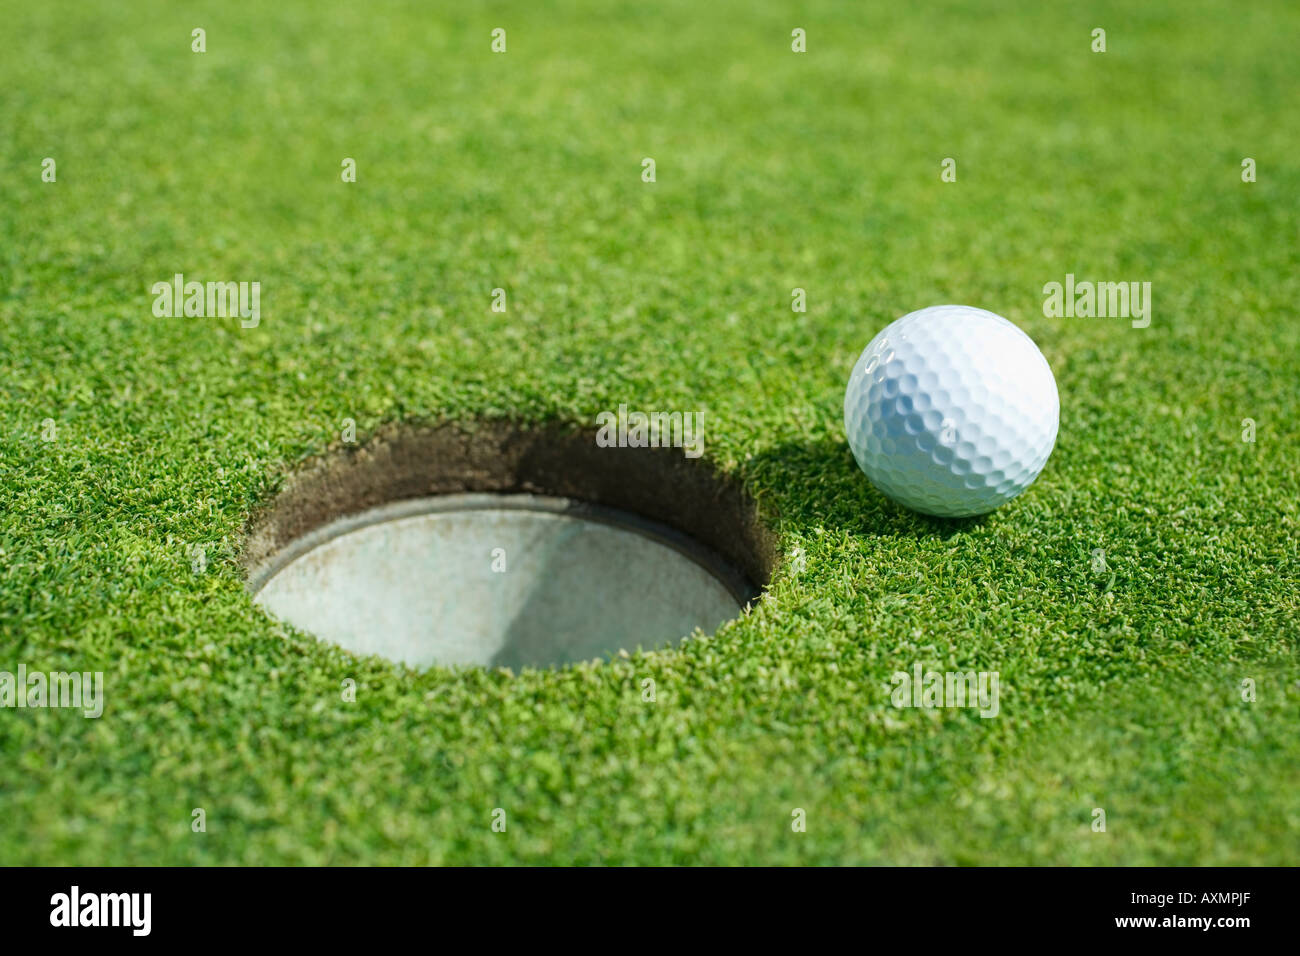 Golf ball near cup on putting green outdoors - Stock Image